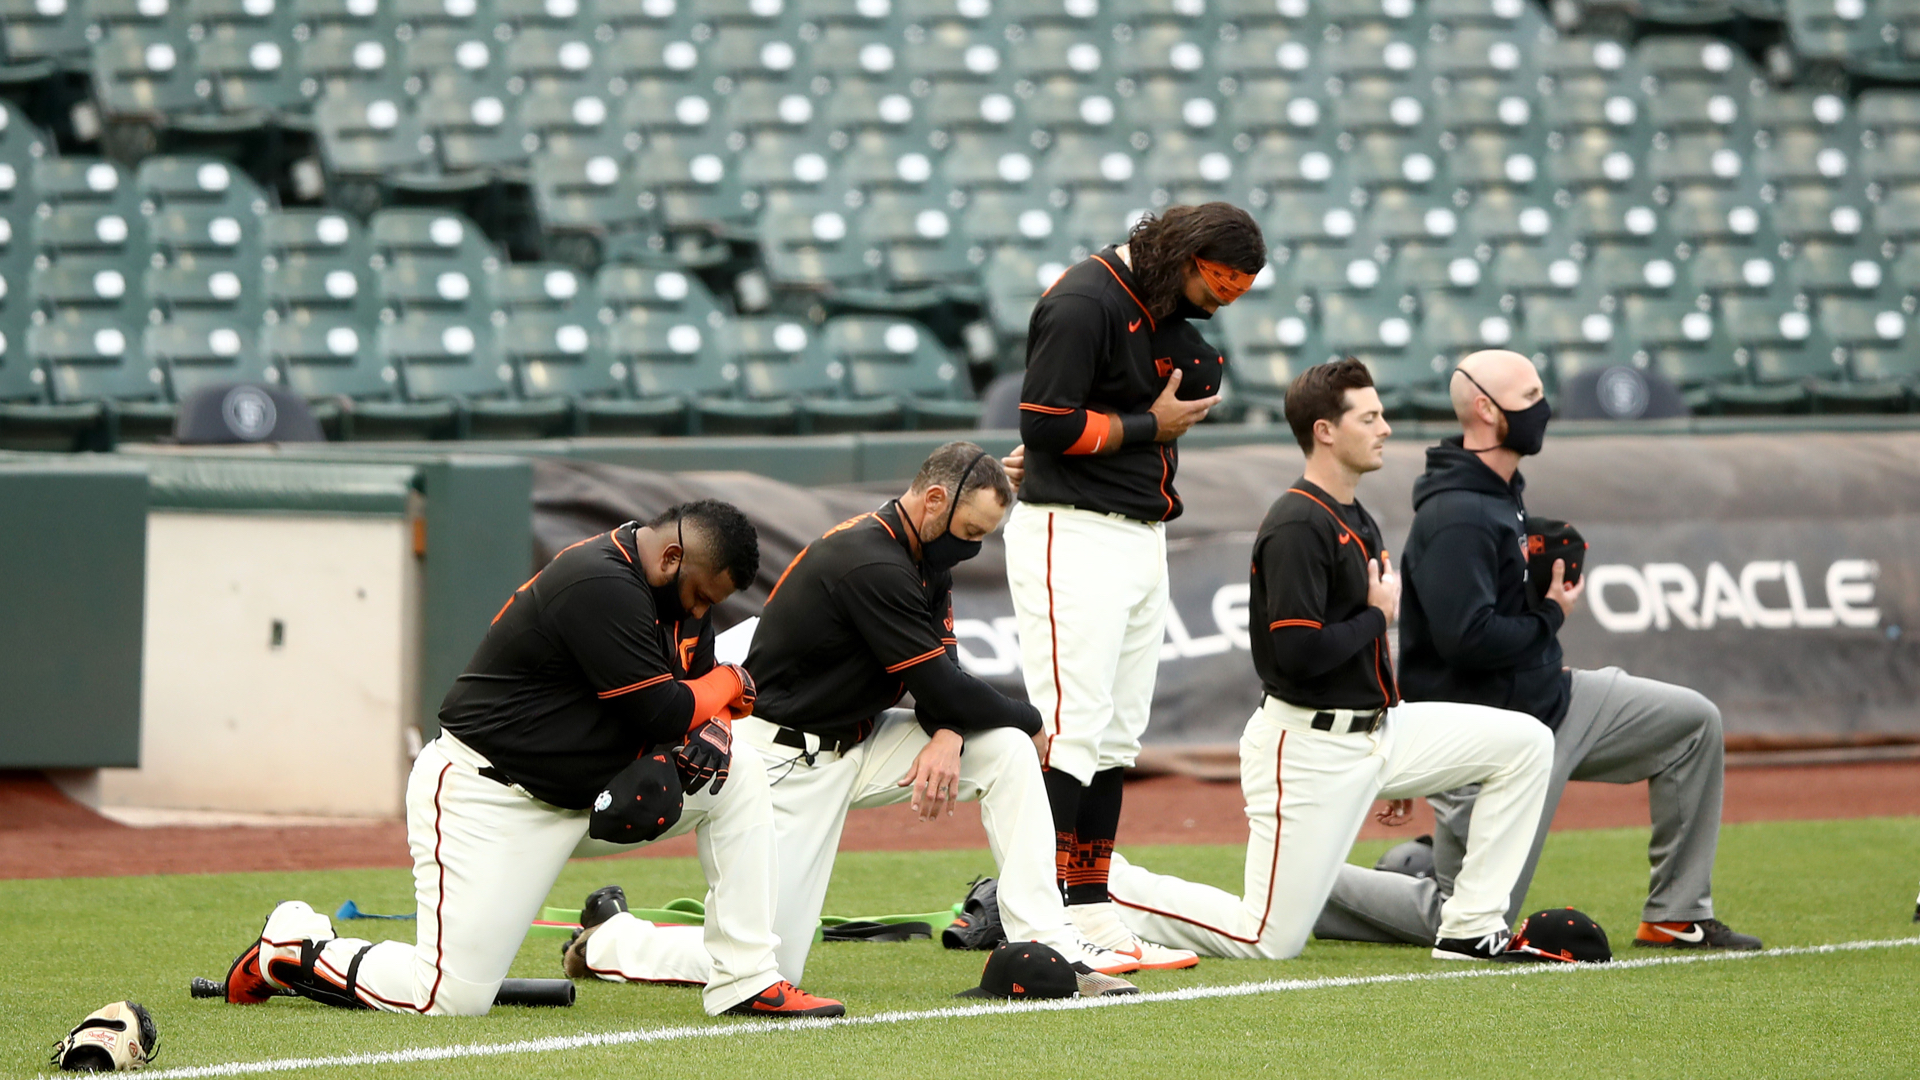 MLB players explain sudden choice to kneel for anthem: 'Simply put, things need to change' 1